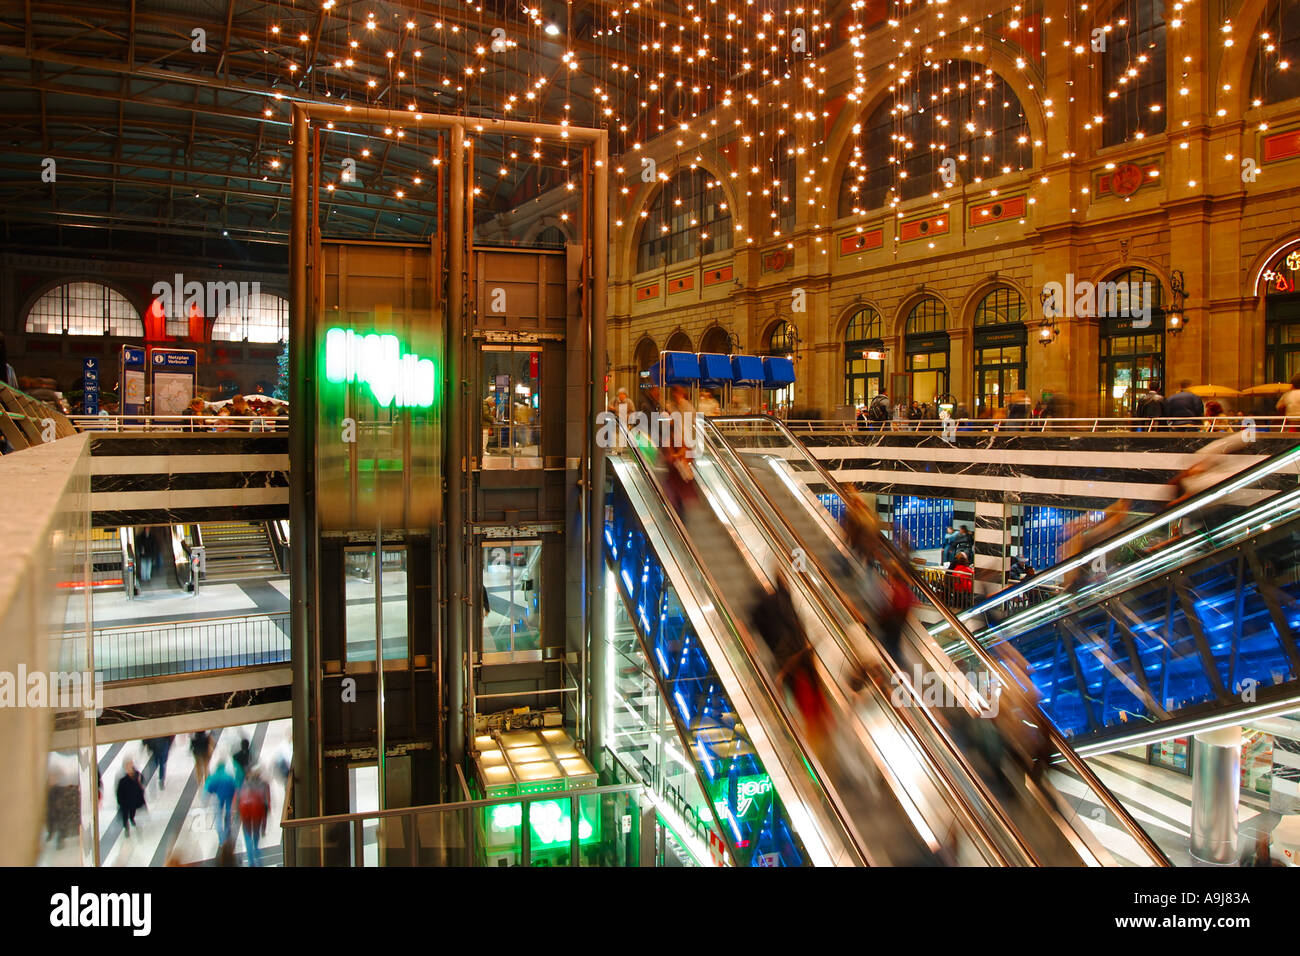 Switzerland Zurich main station hall chirstmas lights indoor - Stock Image